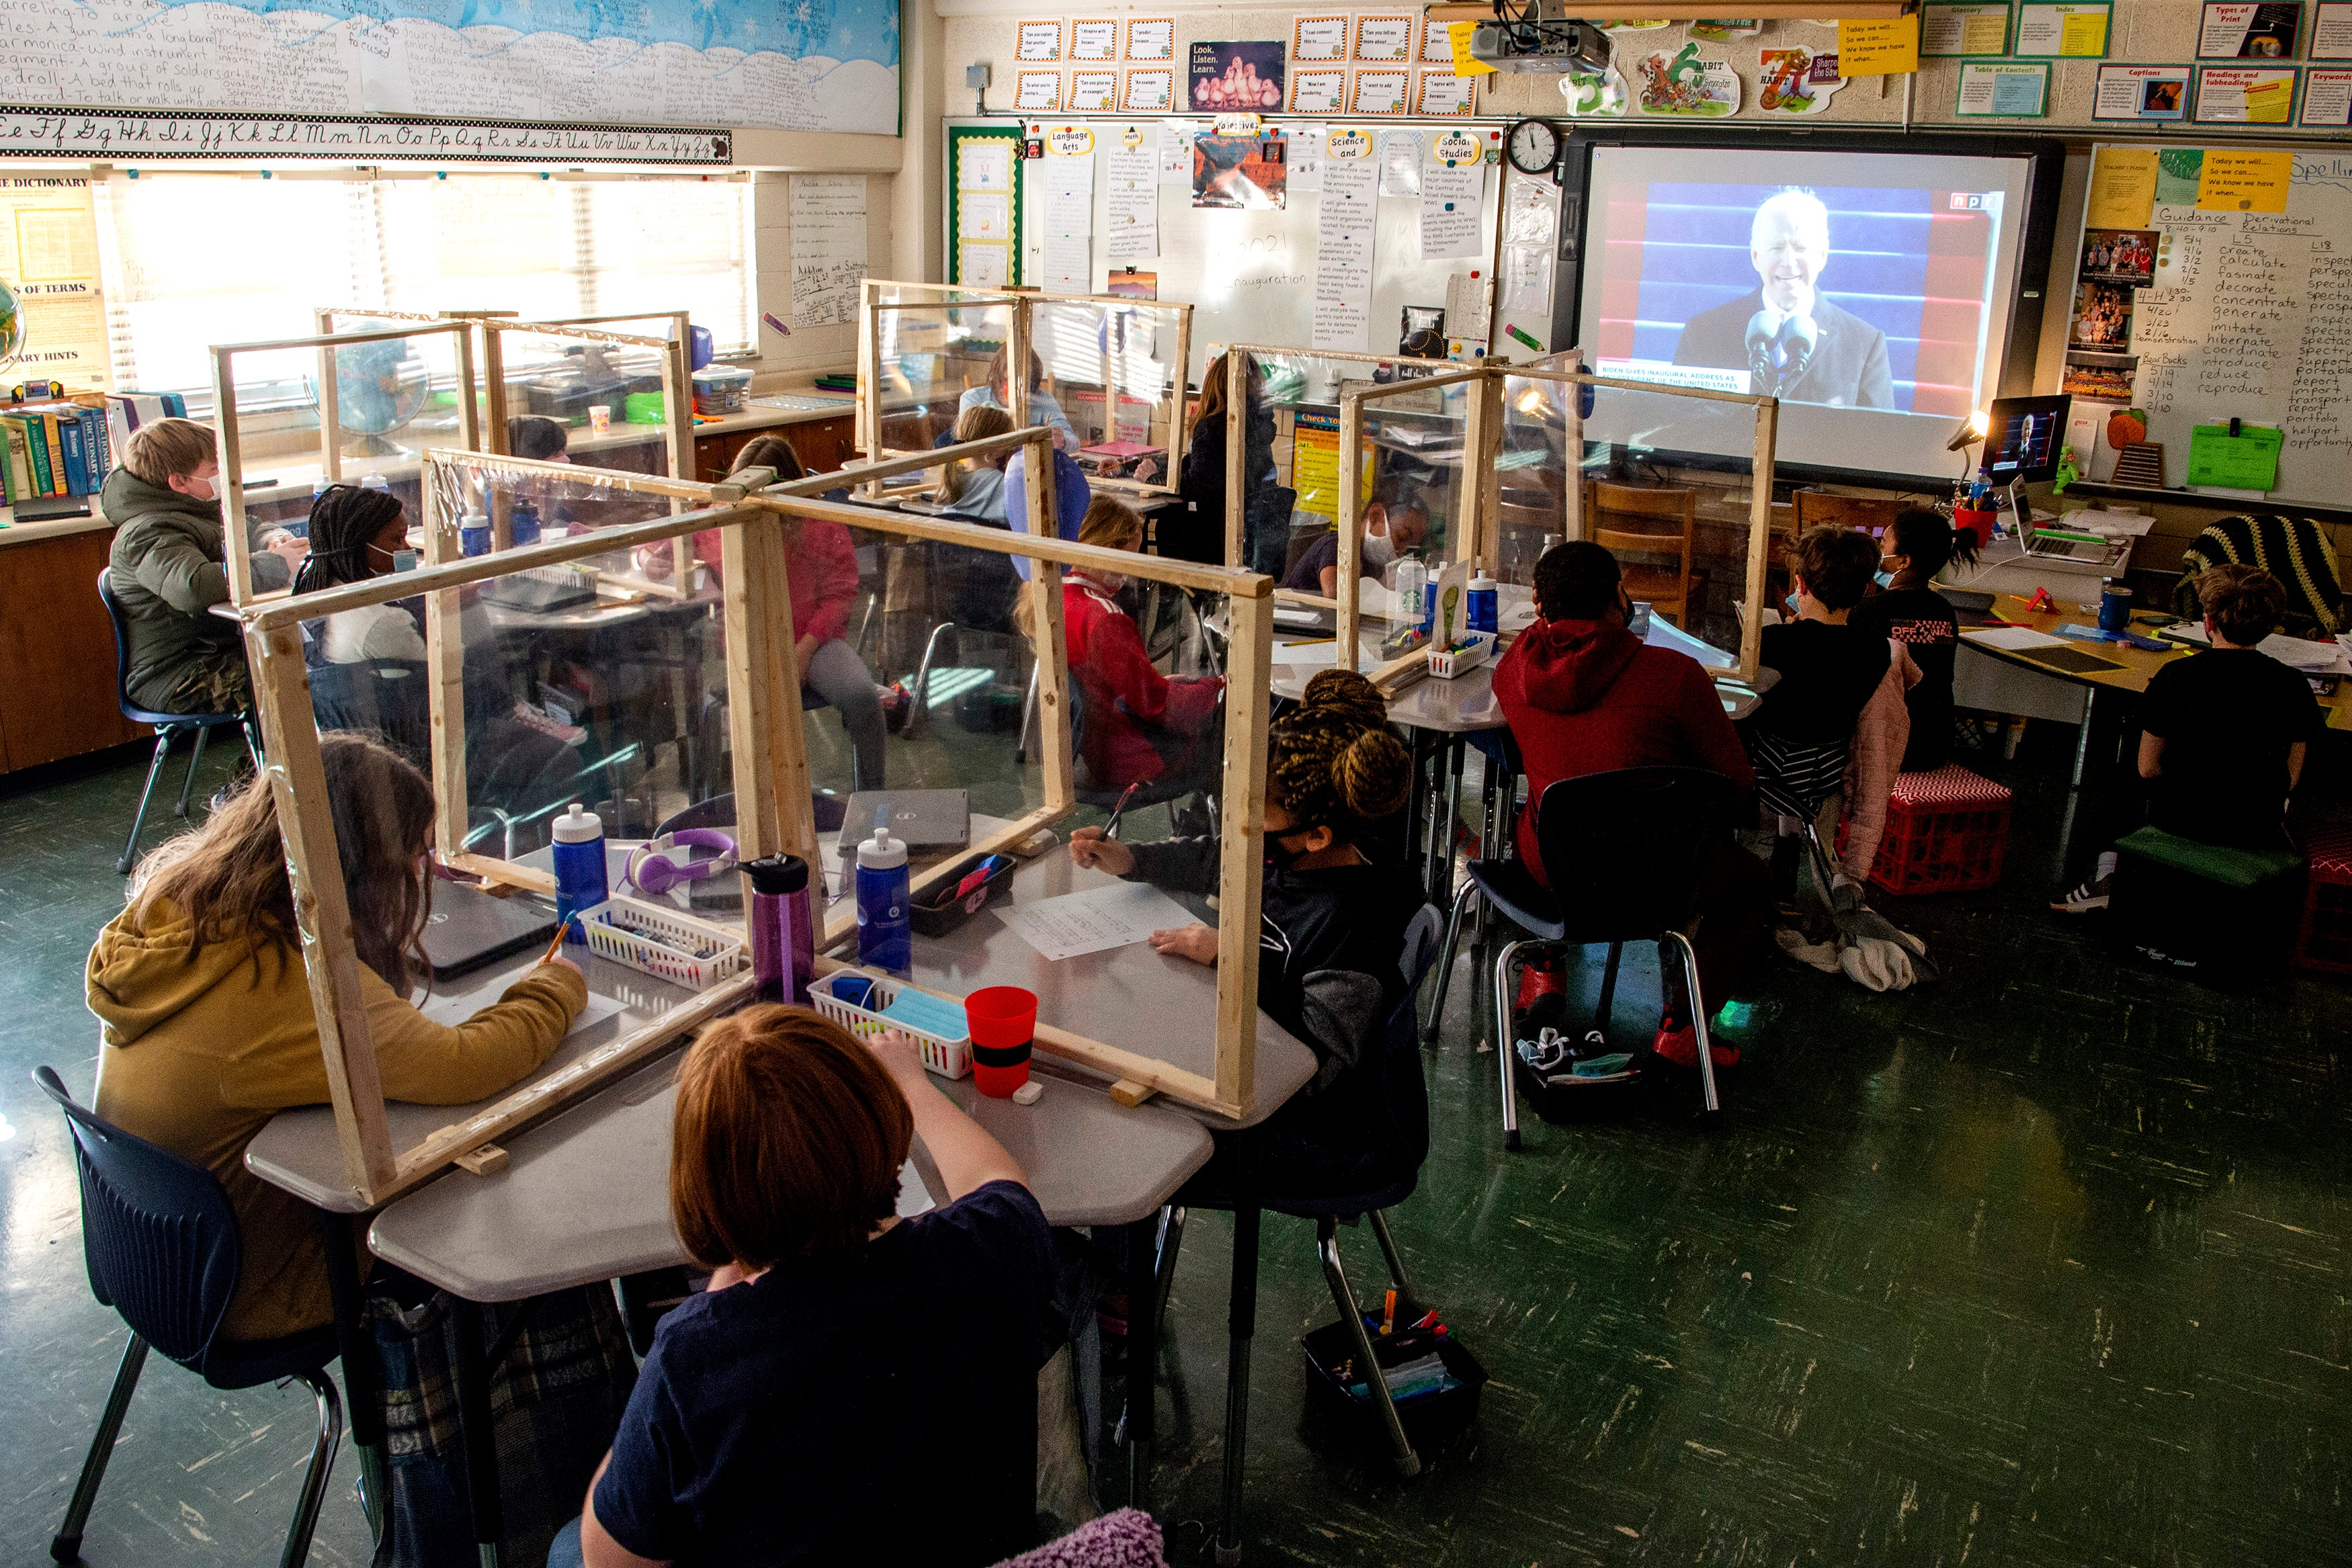 Students in Anne Lefler   s fifth grade class at South Knoxville Elementary watch as President Joe Biden speaks to the nation in his inauguration speech on Wednesday, January 20, 2021.Kns Inauguration School Bp